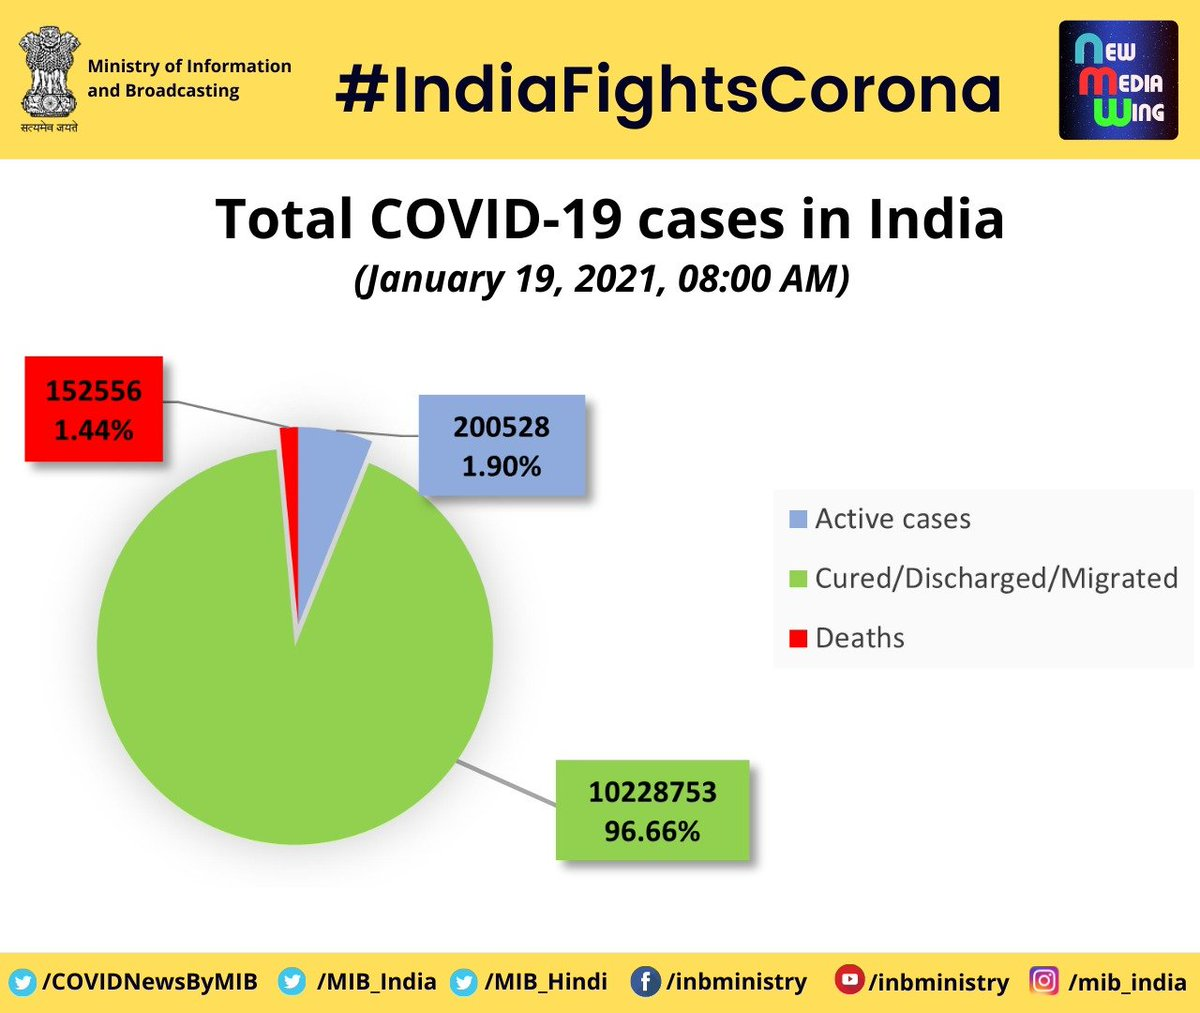 #CoronaVirusUpdates:   📍Total #COVID19 Cases in India (as on January 19, 2021)  ▶️96.66% Cured/Discharged/Migrated (1,02,28,753) ▶️1.90% Active cases (2,00,528) ▶️1.44% Deaths (1,52,556)  Total COVID-19 confirmed cases = Cured/Discharged/Migrated+Active cases+Deaths  #StaySafe